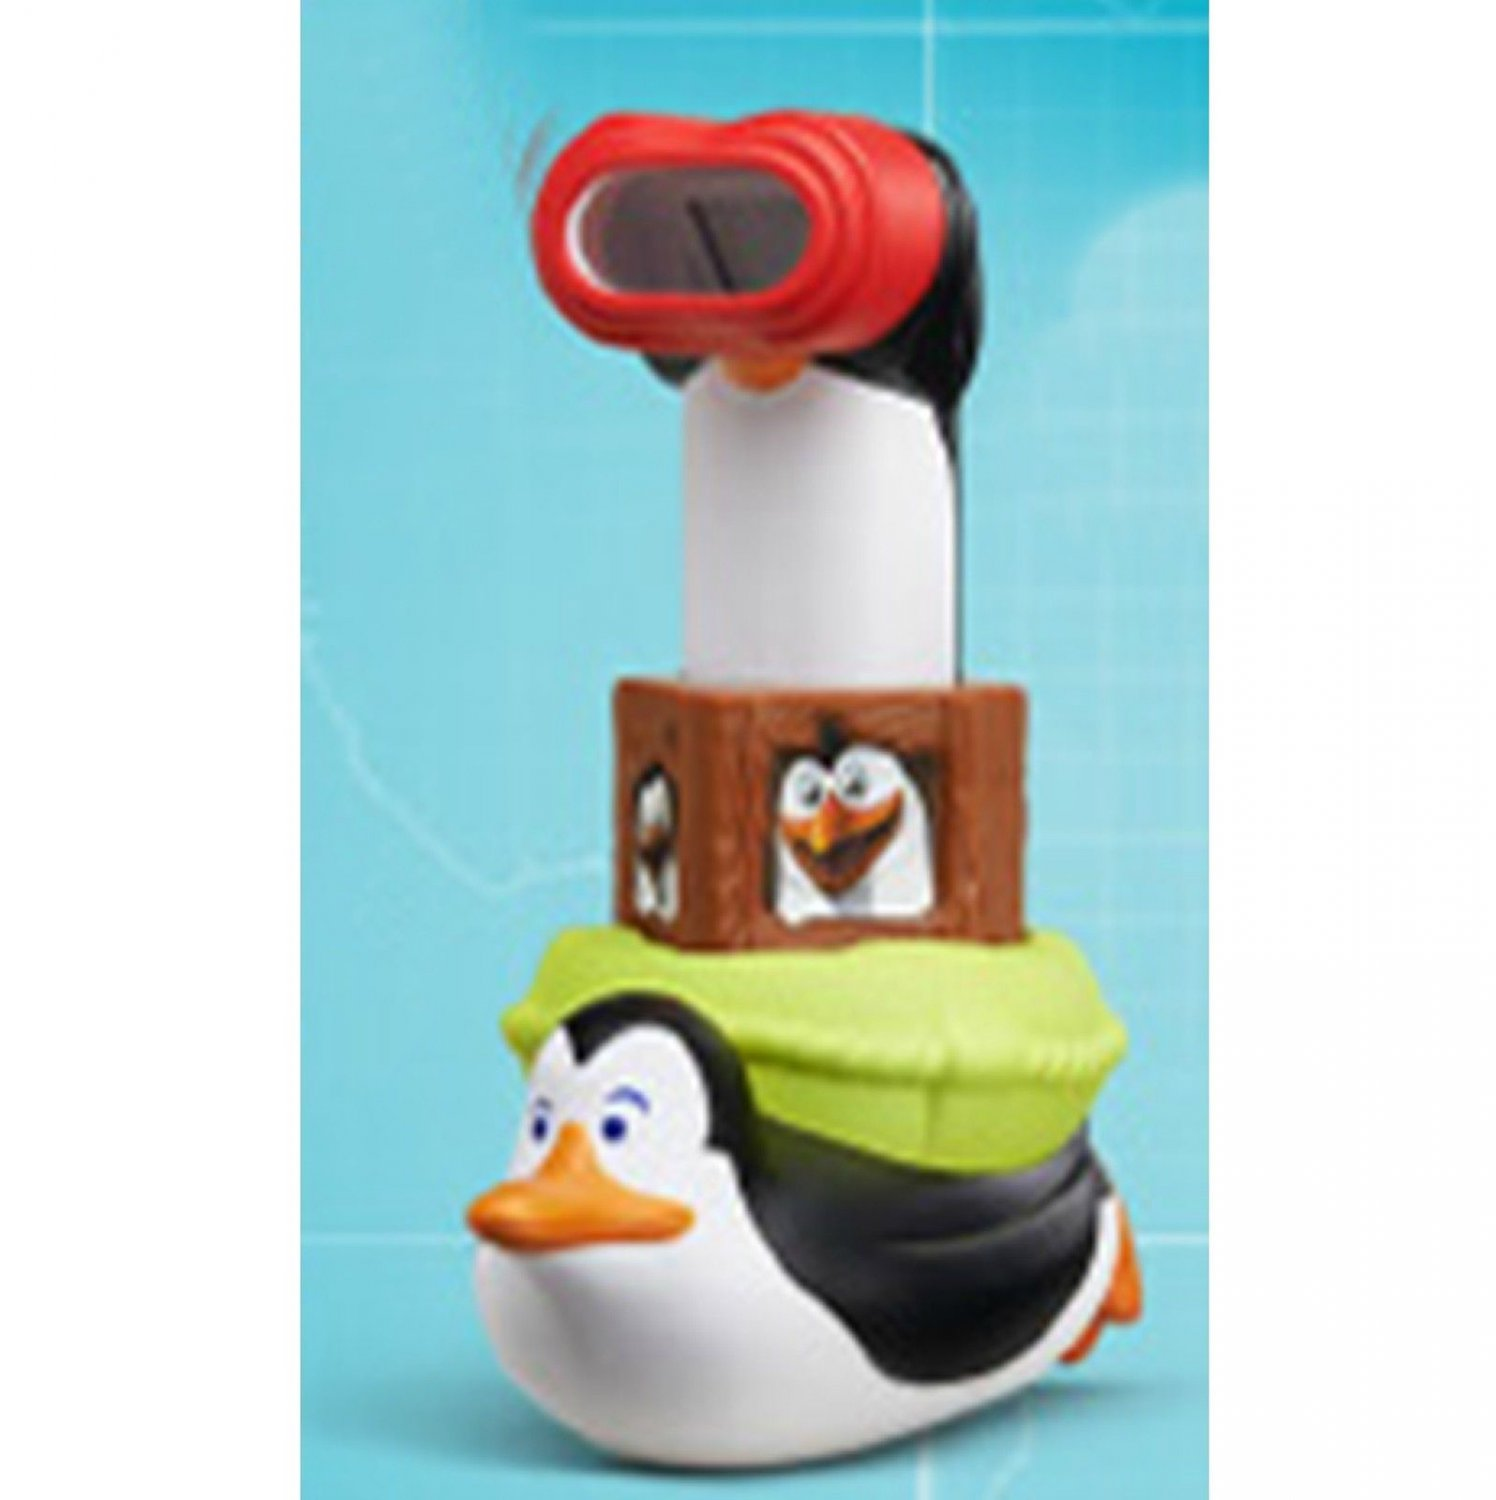 HK McDonald's Happy Meal Toy:2014 PENGUINS MADAGASCAR